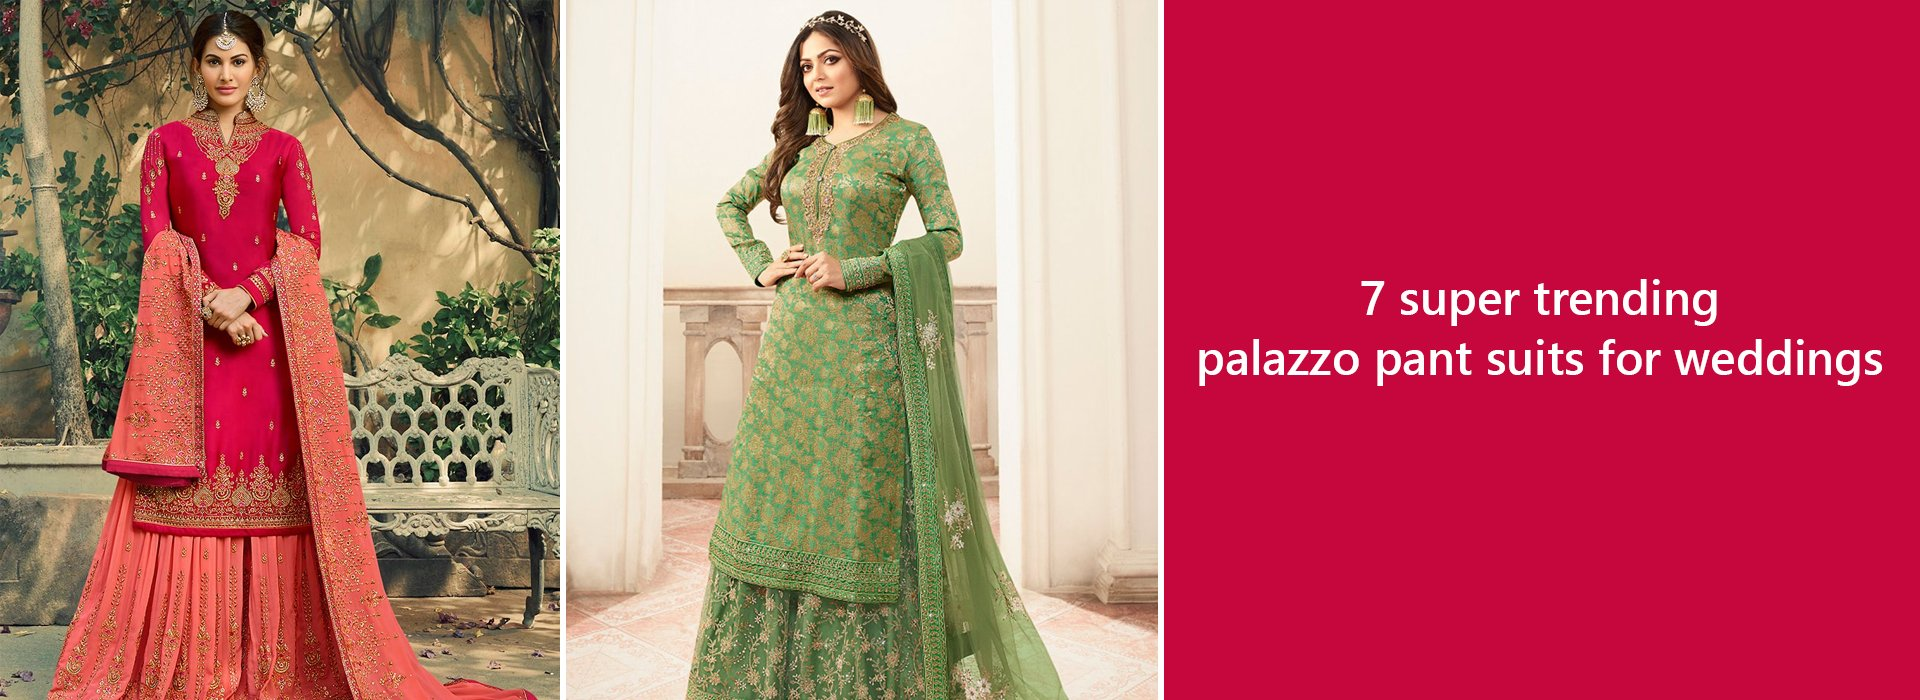 7 Super Trending Palazzo Pant Suits For Weddings